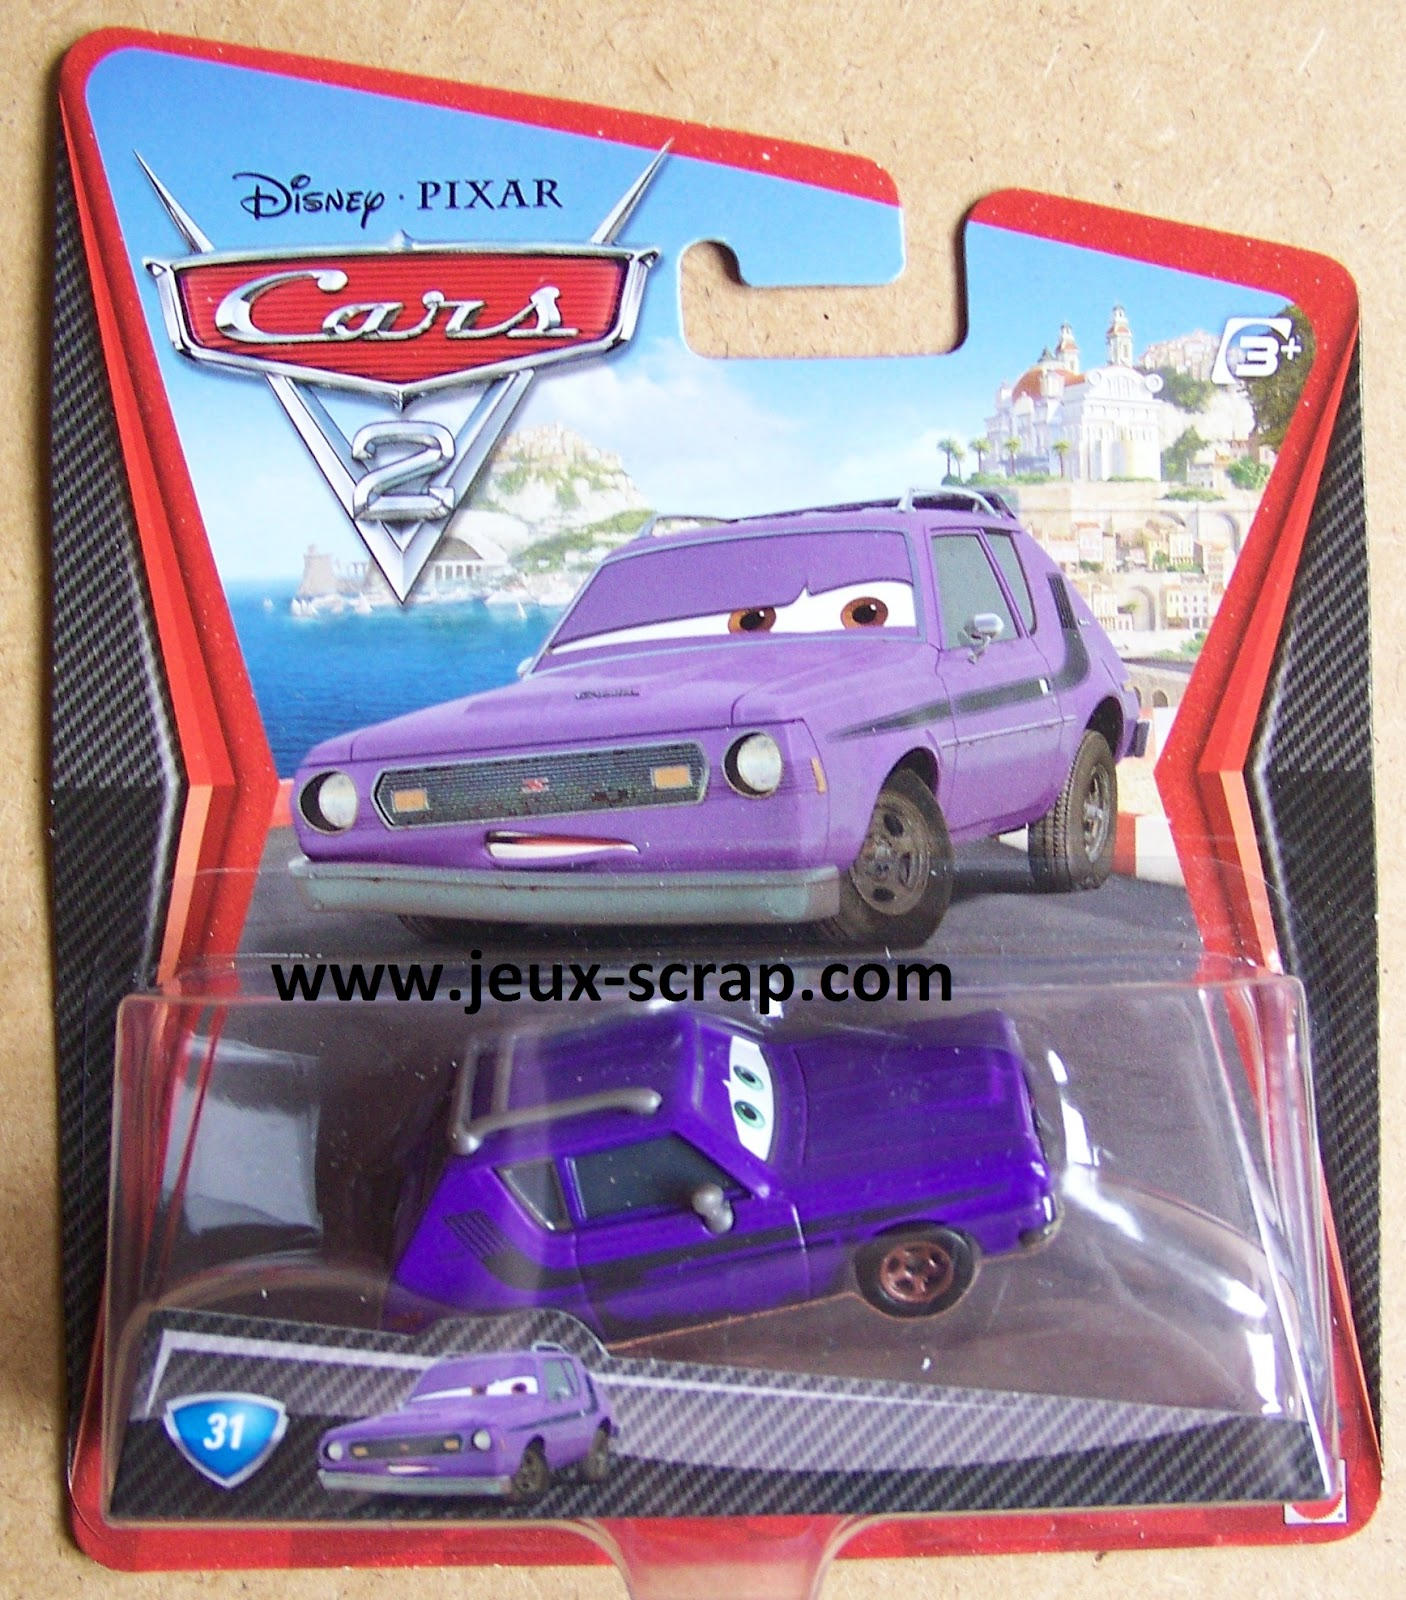 blog boutique jouets jeux scrap nouvelles voitures cars 2 1 55 2012. Black Bedroom Furniture Sets. Home Design Ideas